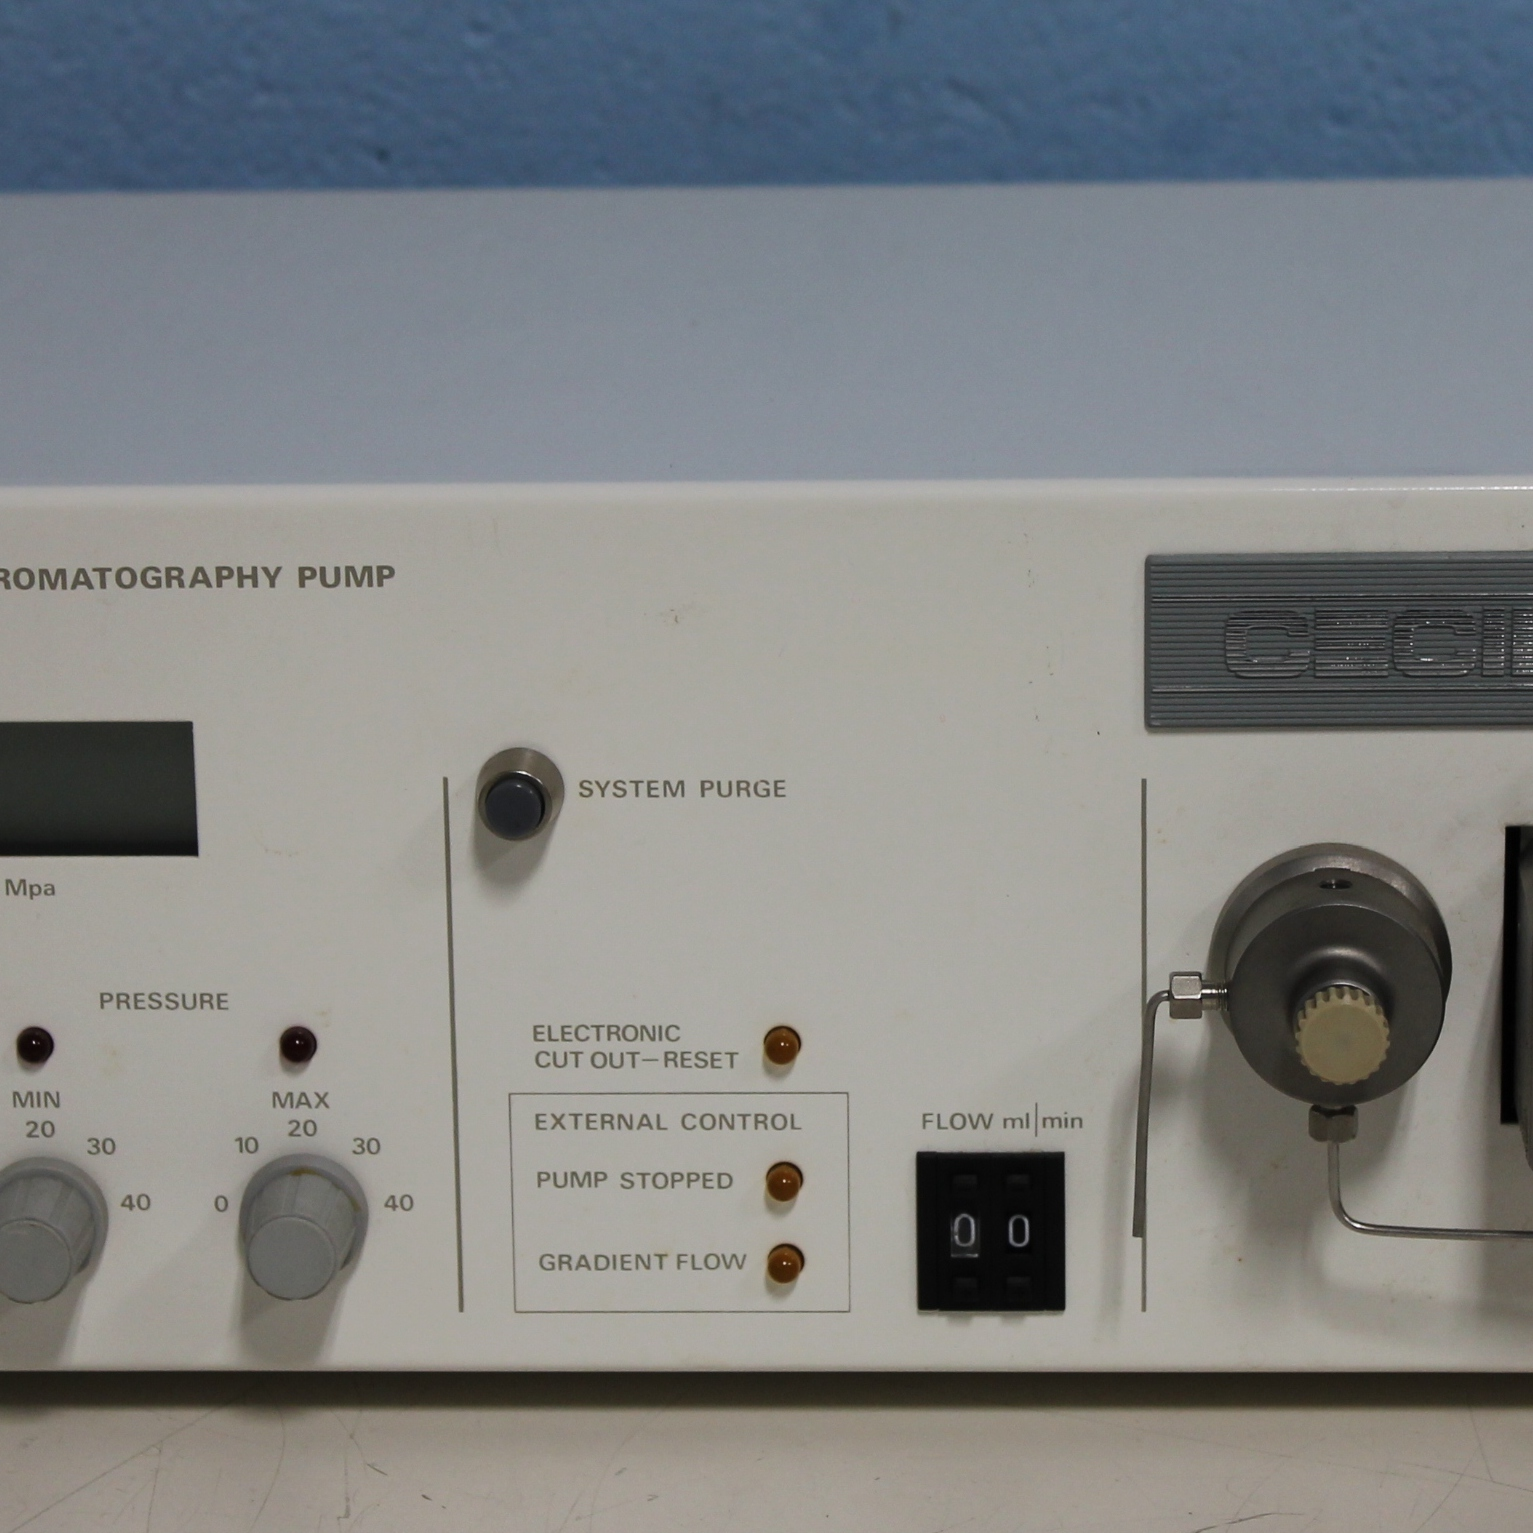 Cecil Instruments 1100 Series CE1100 Liquid Chromatography Pump Image